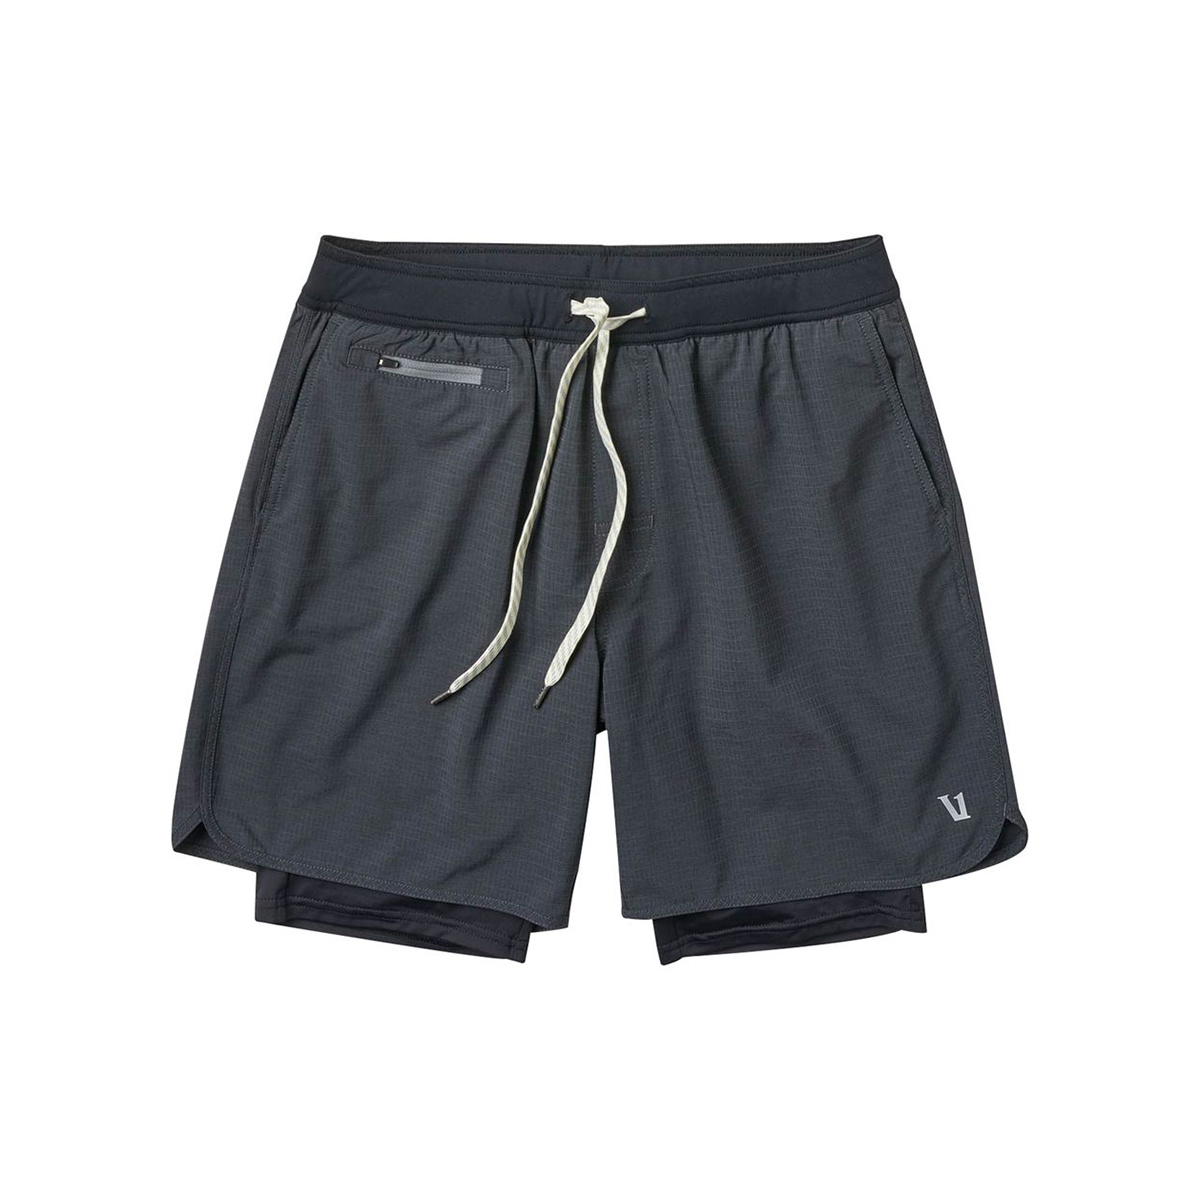 Vuori Men's Stockton Short